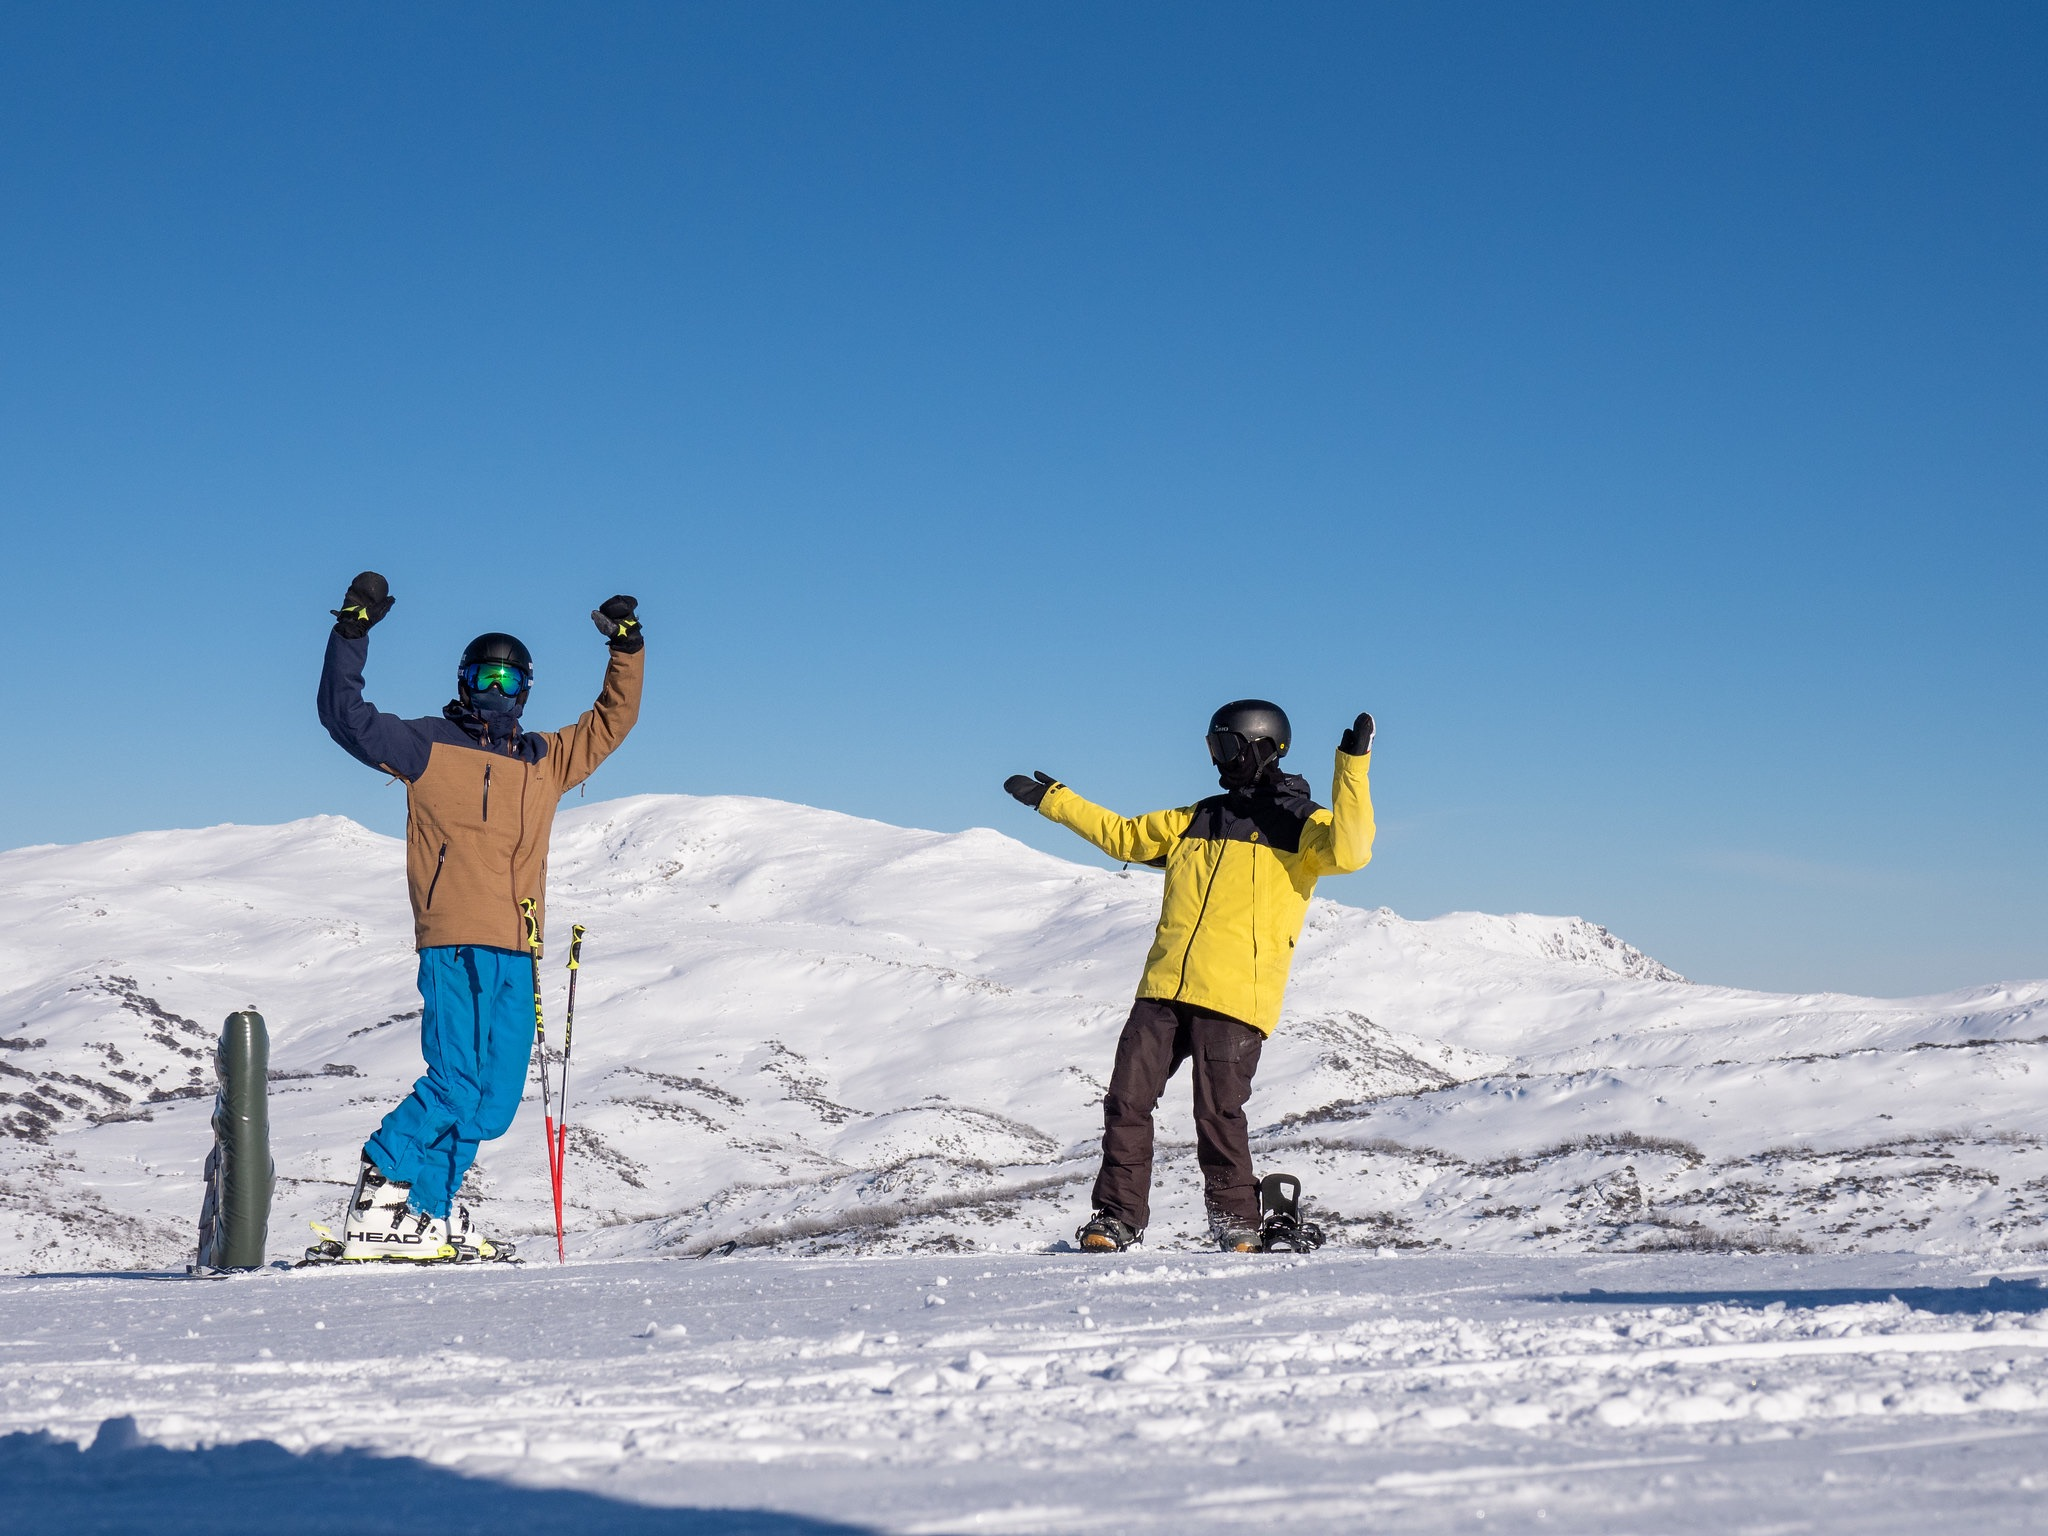 Ski or Snowboard at Perisher with the 2021 Epic Australia Pass